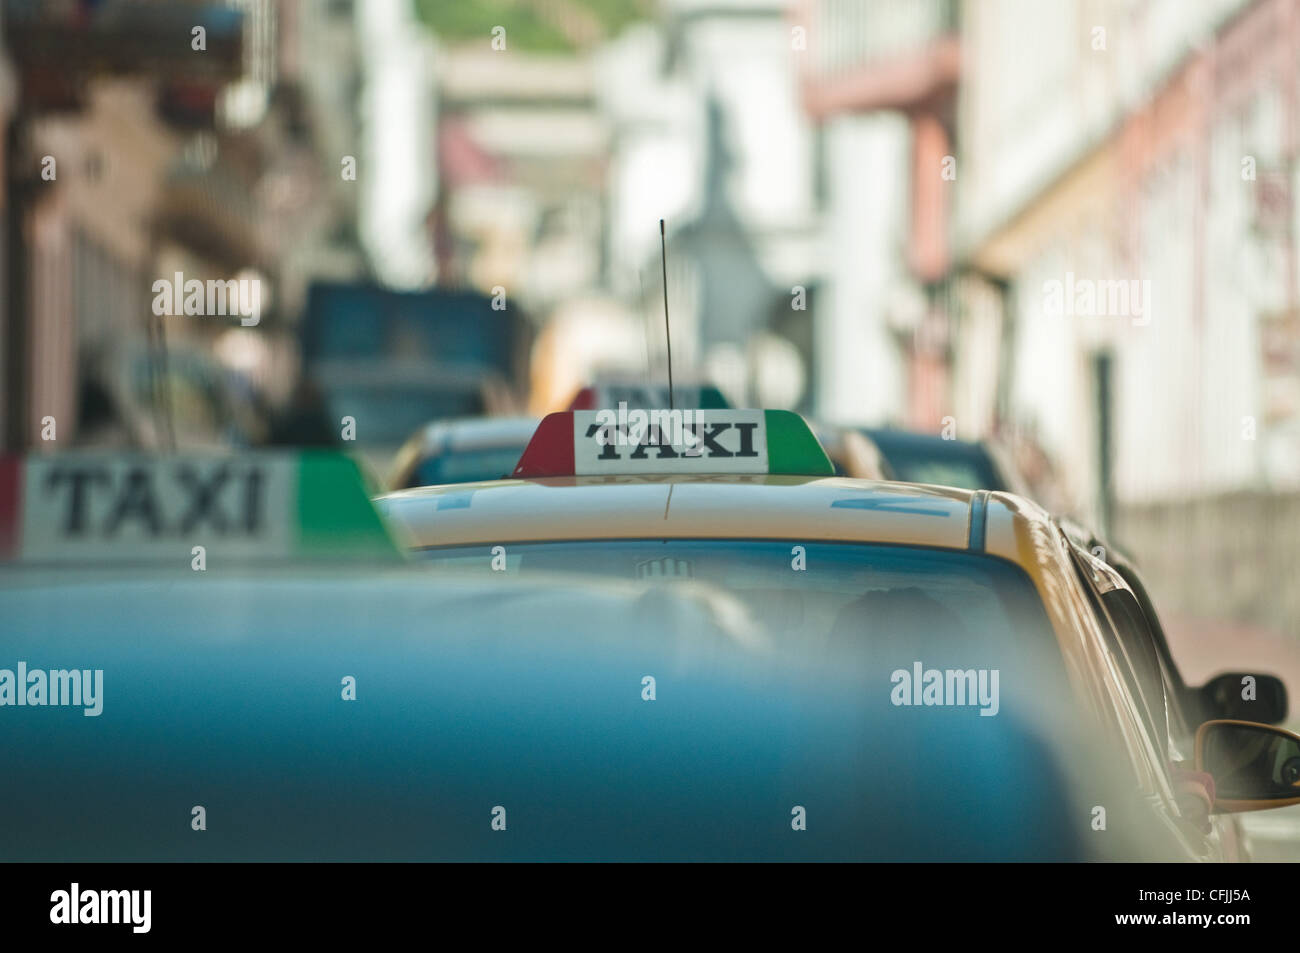 Taxis in historic centre of Quito, Ecuador - Stock Image